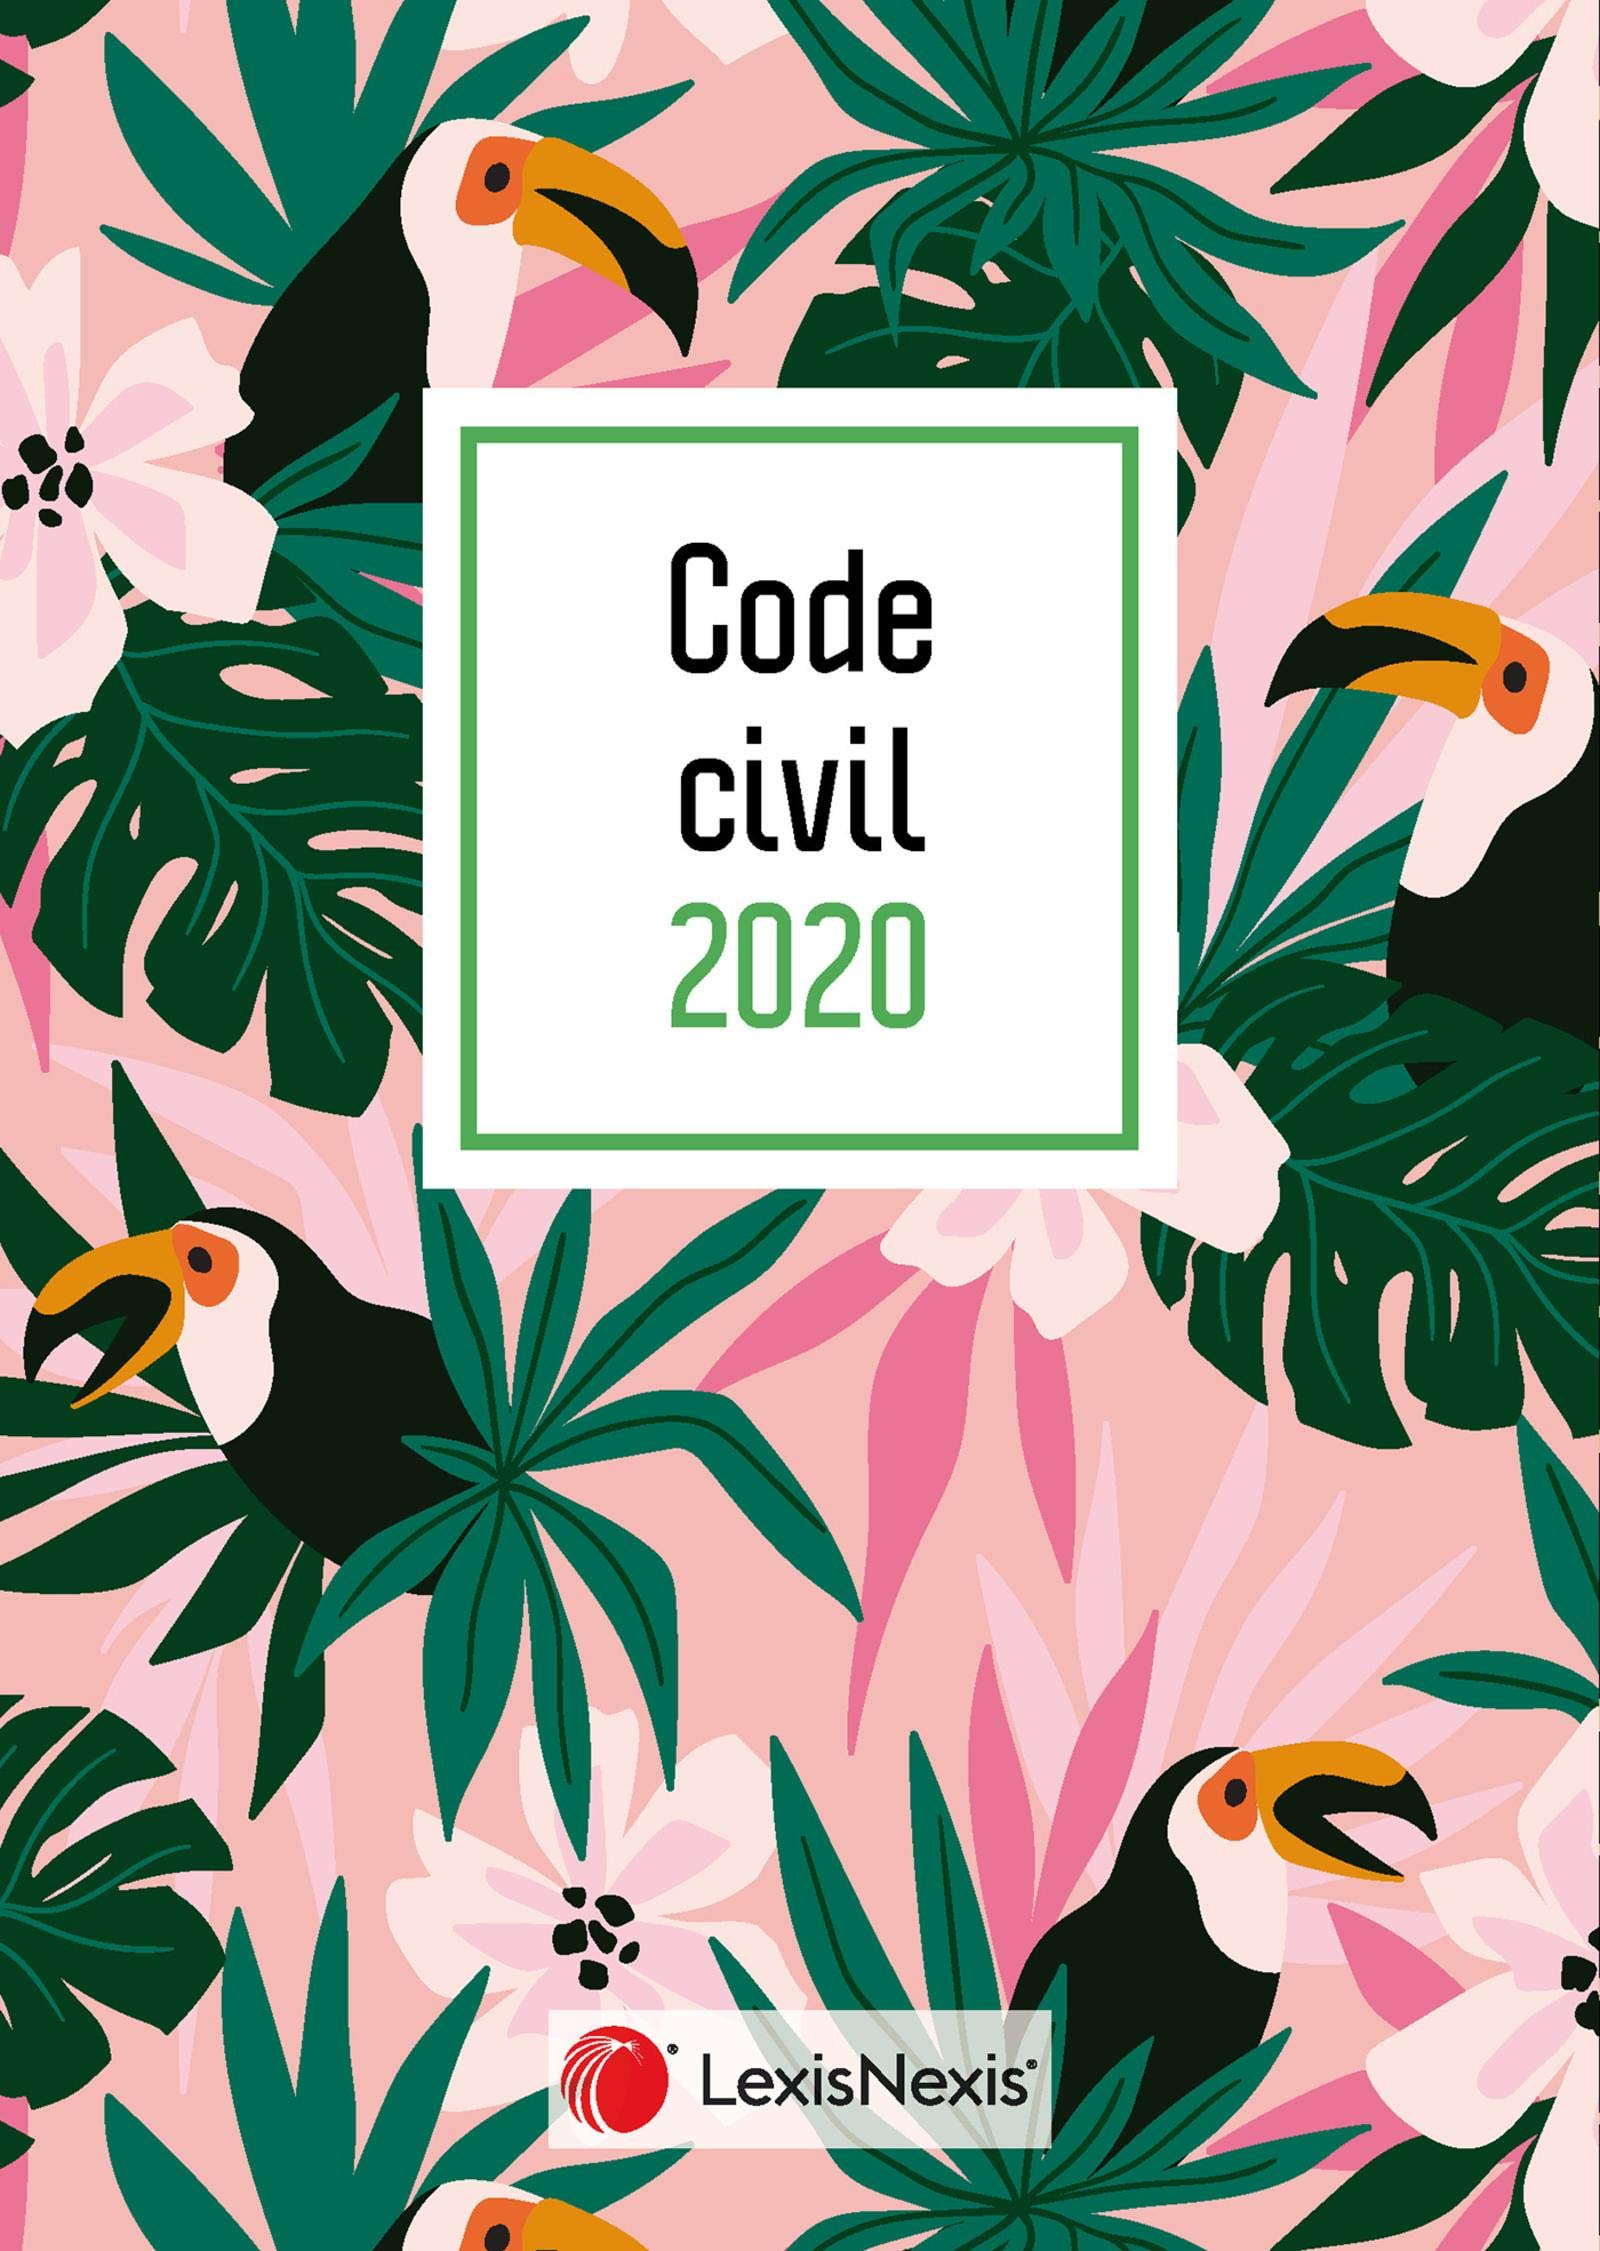 Code Civil 2020 - Toucan